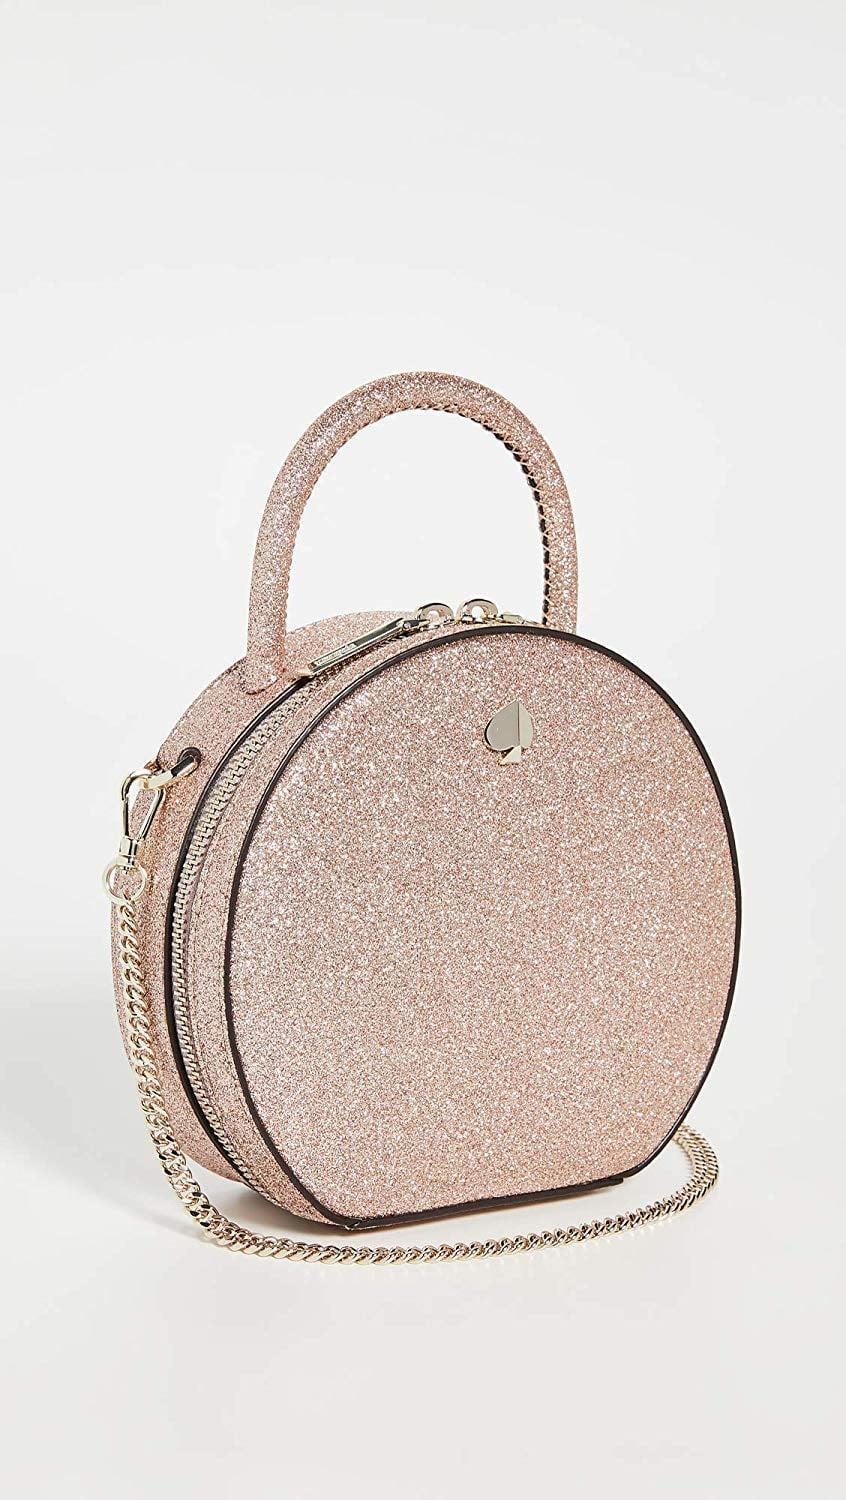 """<p>This sparkly <a href=""""https://www.popsugar.com/buy/Kate-Spade-New-York-Andi-Glitter-Mini-Canteen-Bag-523504?p_name=Kate%20Spade%20New%20York%20Andi%20Glitter%20Mini%20Canteen%20Bag&retailer=amazon.com&pid=523504&price=258&evar1=fab%3Auk&evar9=46947746&evar98=https%3A%2F%2Fwww.popsugar.com%2Ffashion%2Fphoto-gallery%2F46947746%2Fimage%2F46949307%2FKate-Spade-New-York-Andi-Glitter-Mini-Canteen-Bag&list1=shopping%2Camazon%2Choliday%2Choliday%20fashion%2Cfashion%20shopping&prop13=api&pdata=1"""" rel=""""nofollow noopener"""" class=""""link rapid-noclick-resp"""" target=""""_blank"""" data-ylk=""""slk:Kate Spade New York Andi Glitter Mini Canteen Bag"""">Kate Spade New York Andi Glitter Mini Canteen Bag</a> ($258) is a dream come true.</p>"""